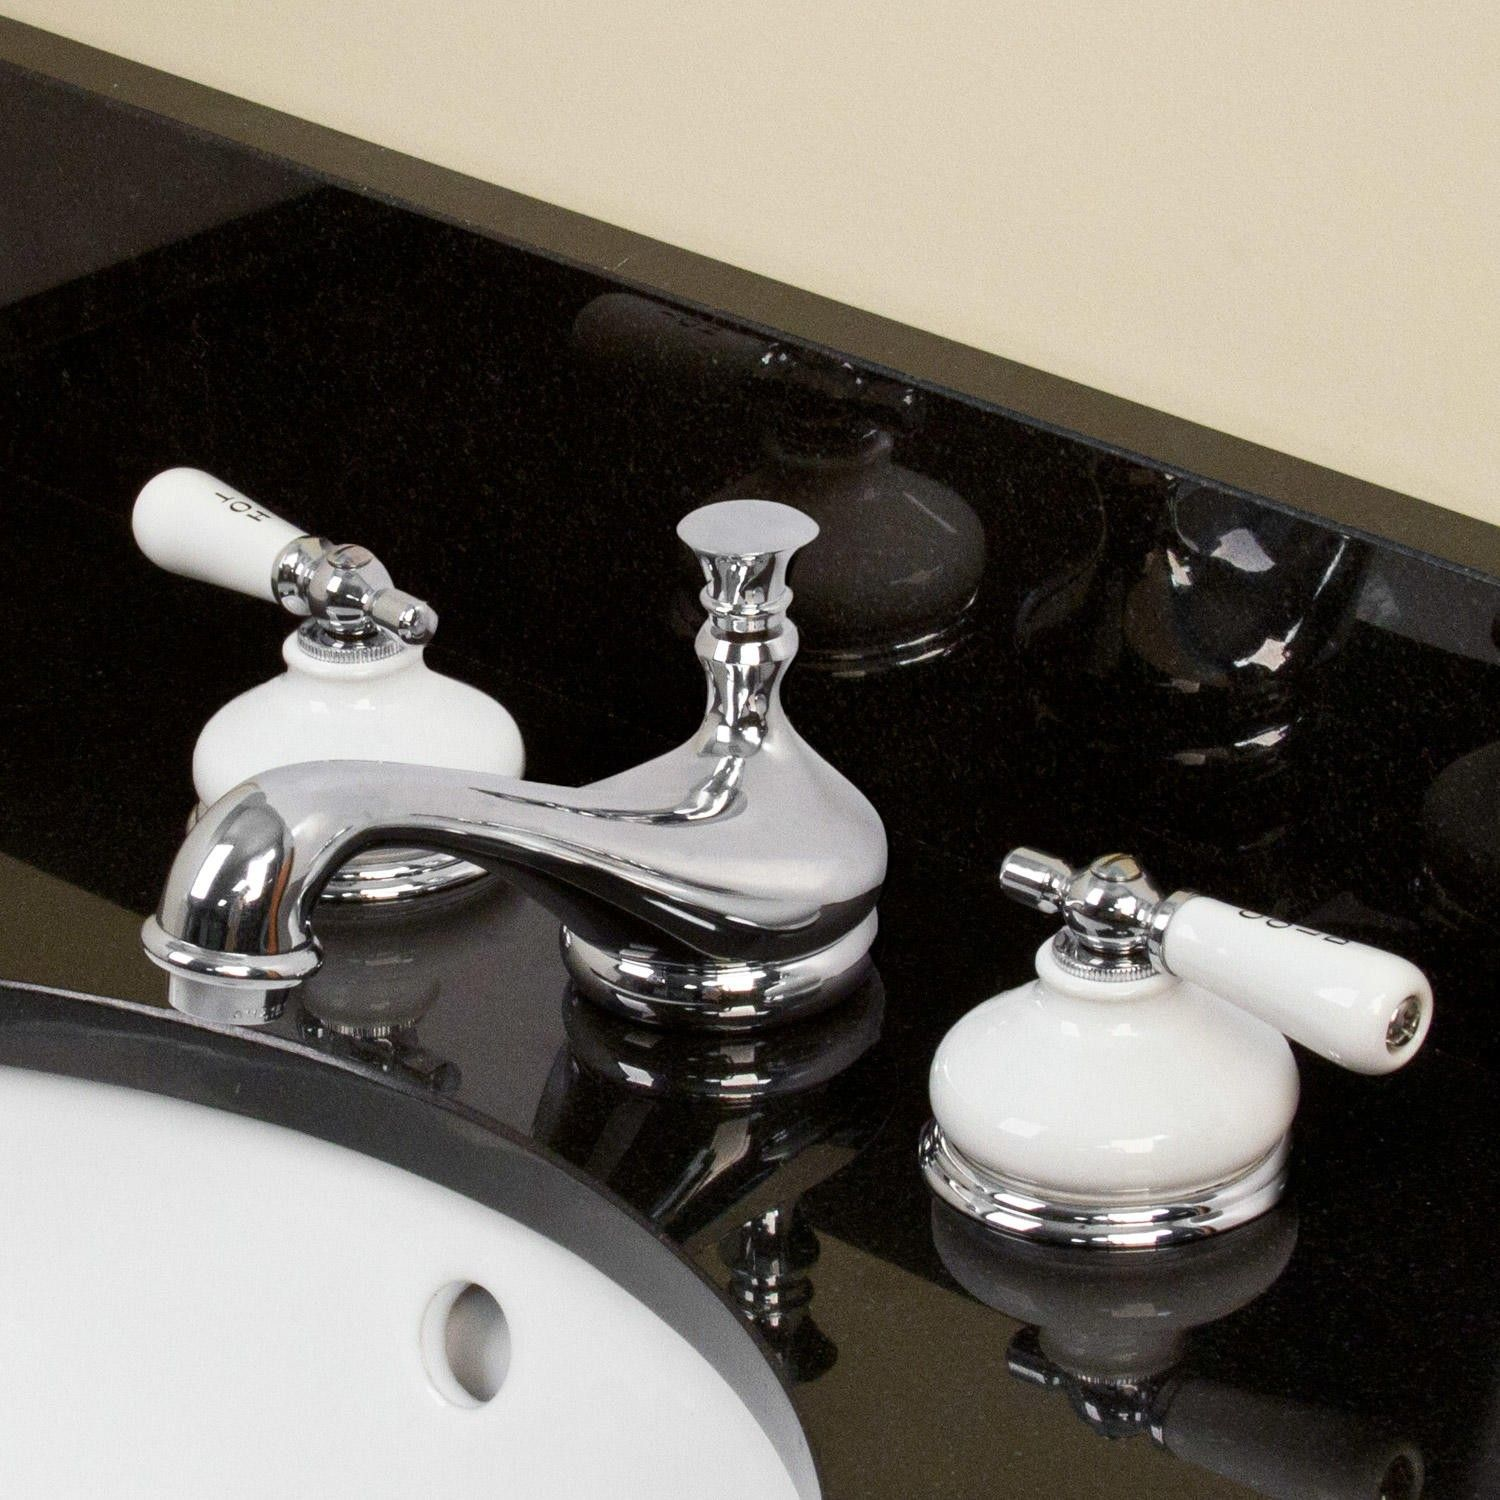 Tullamore Widespread Faucet - Porcelain Escutcheons & Small Lever ...